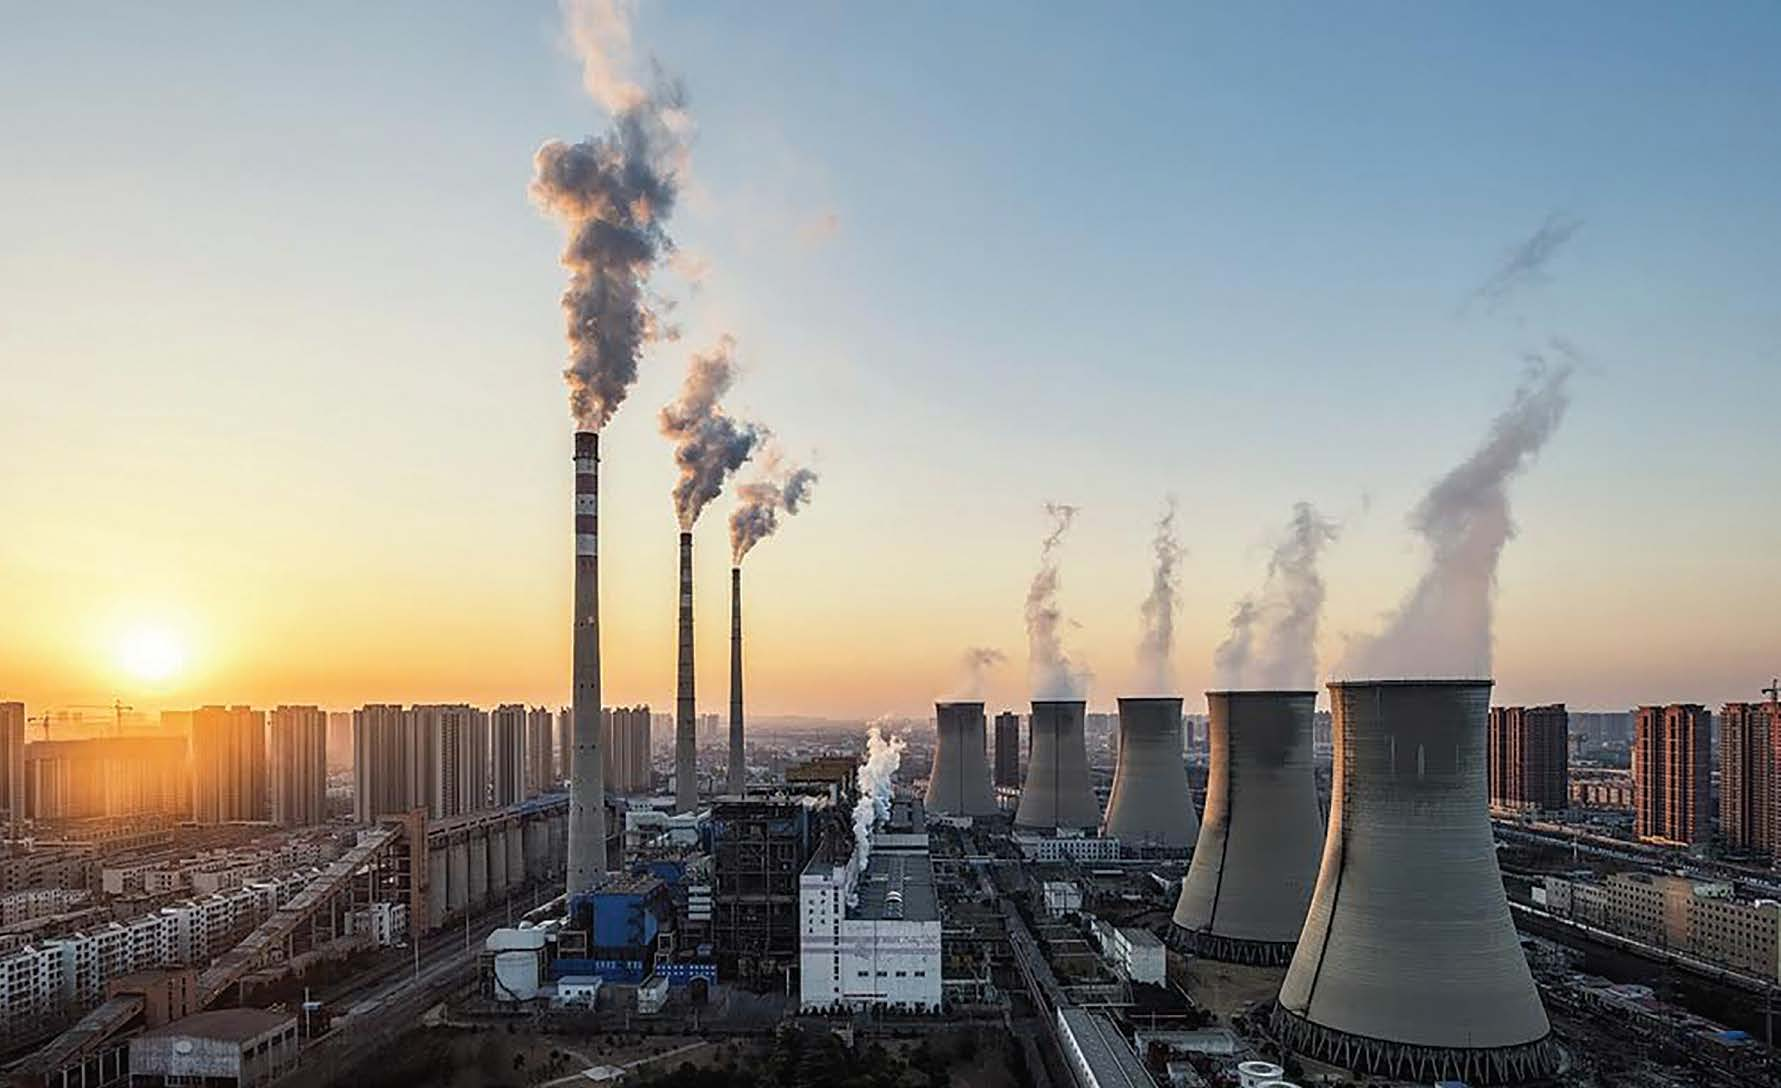 China aims for carbon neutrality by 2060. (CGTN, 2021)